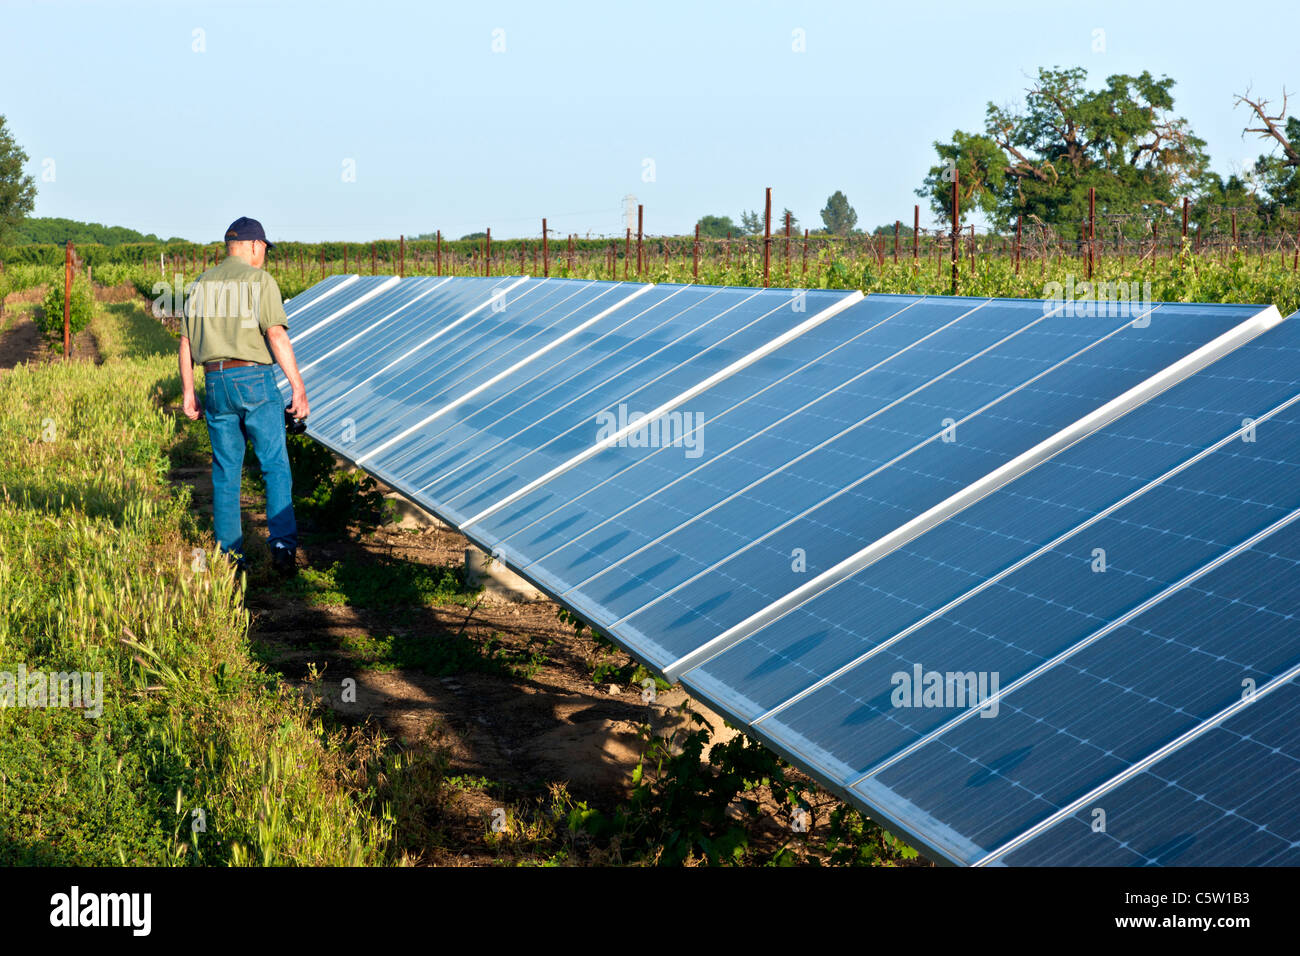 Solar System, technician inspecting panels - Stock Image